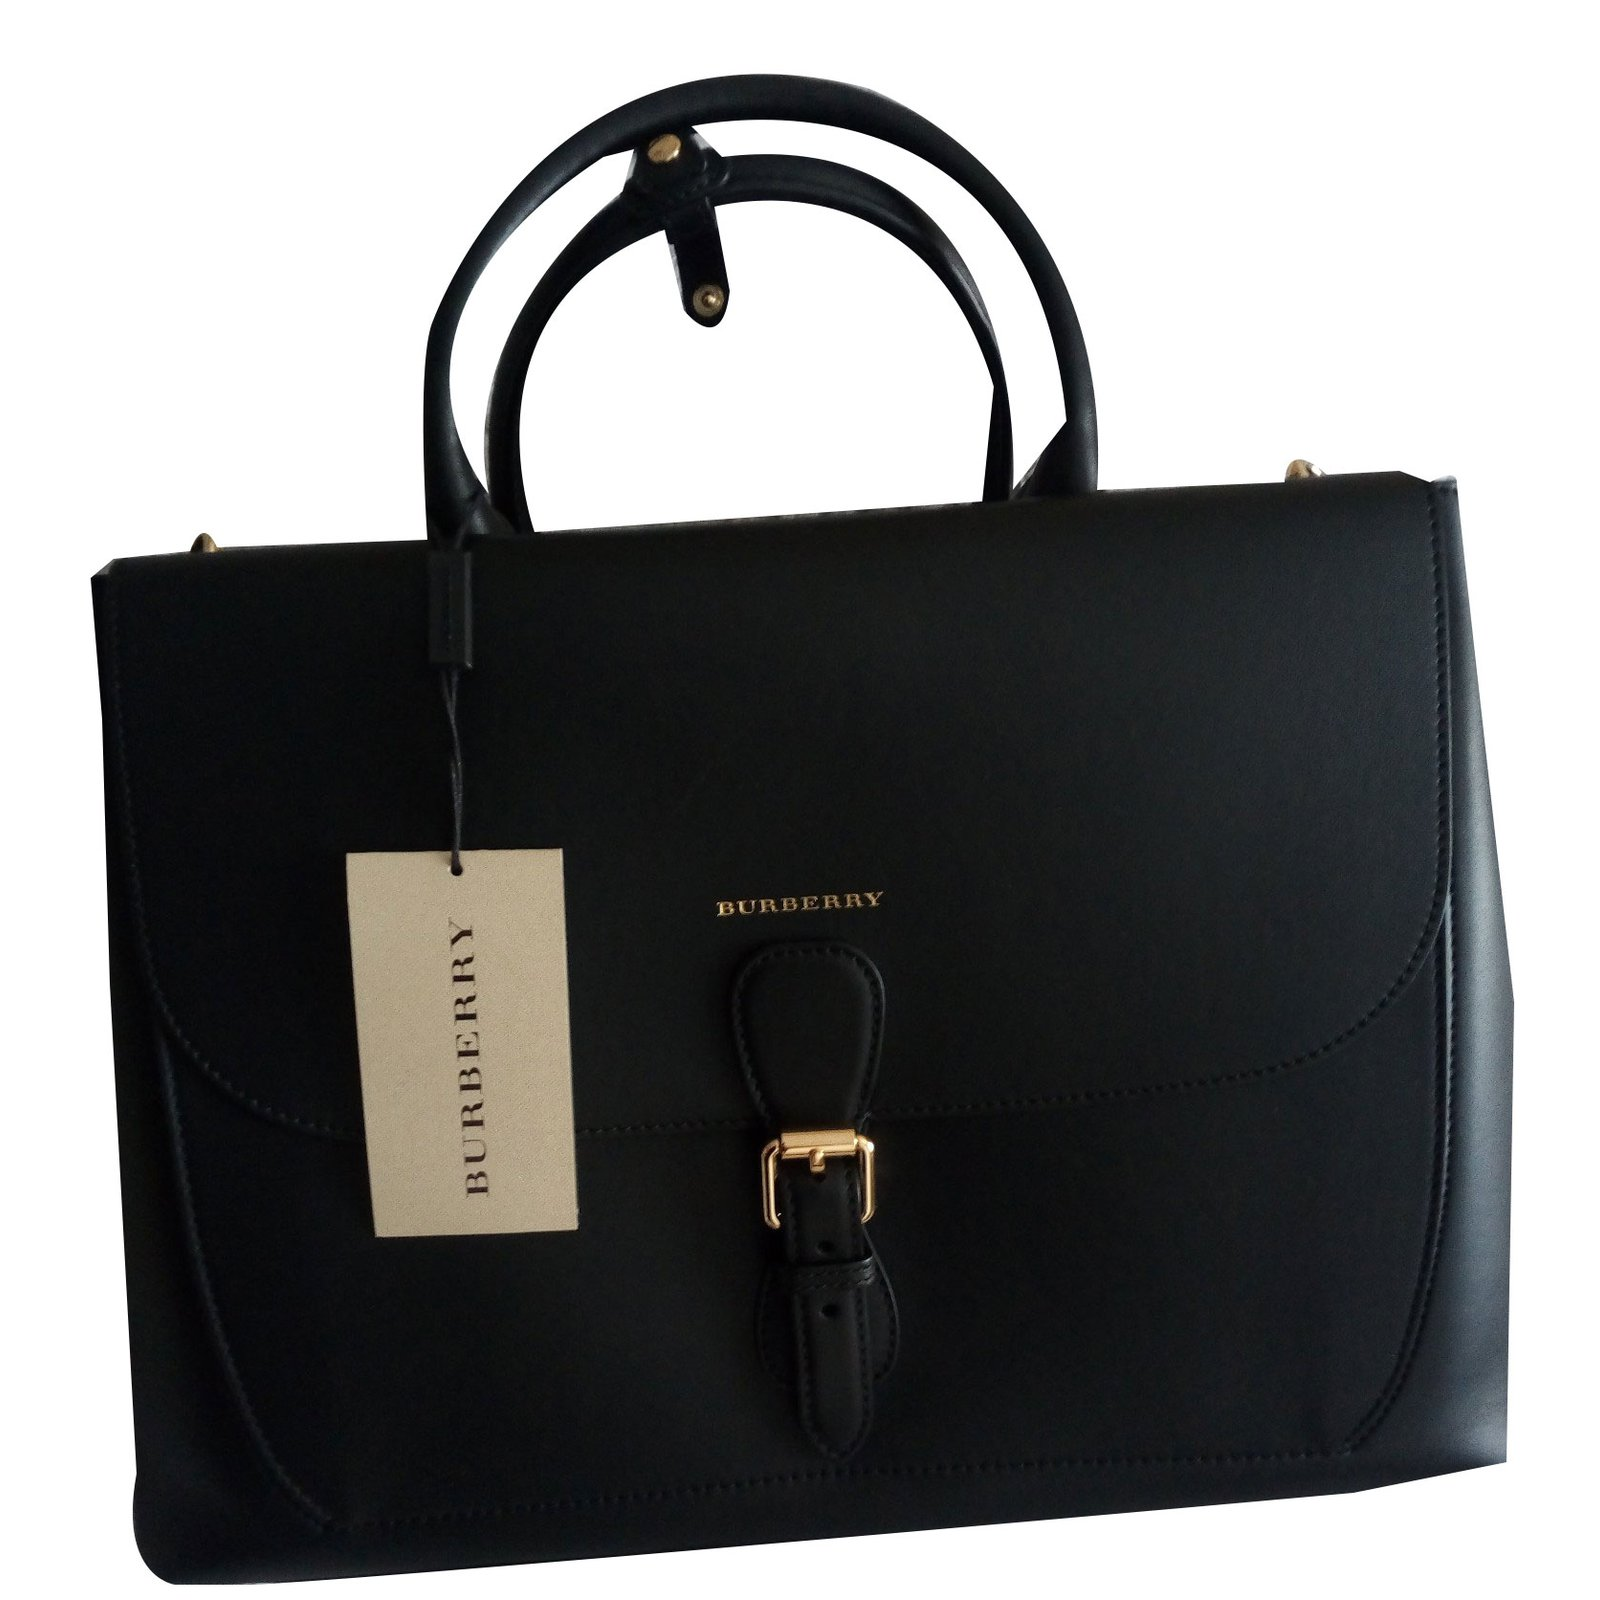 Burberry Signature Large Leather Saddle Bag In Black Handbags Ref 58342